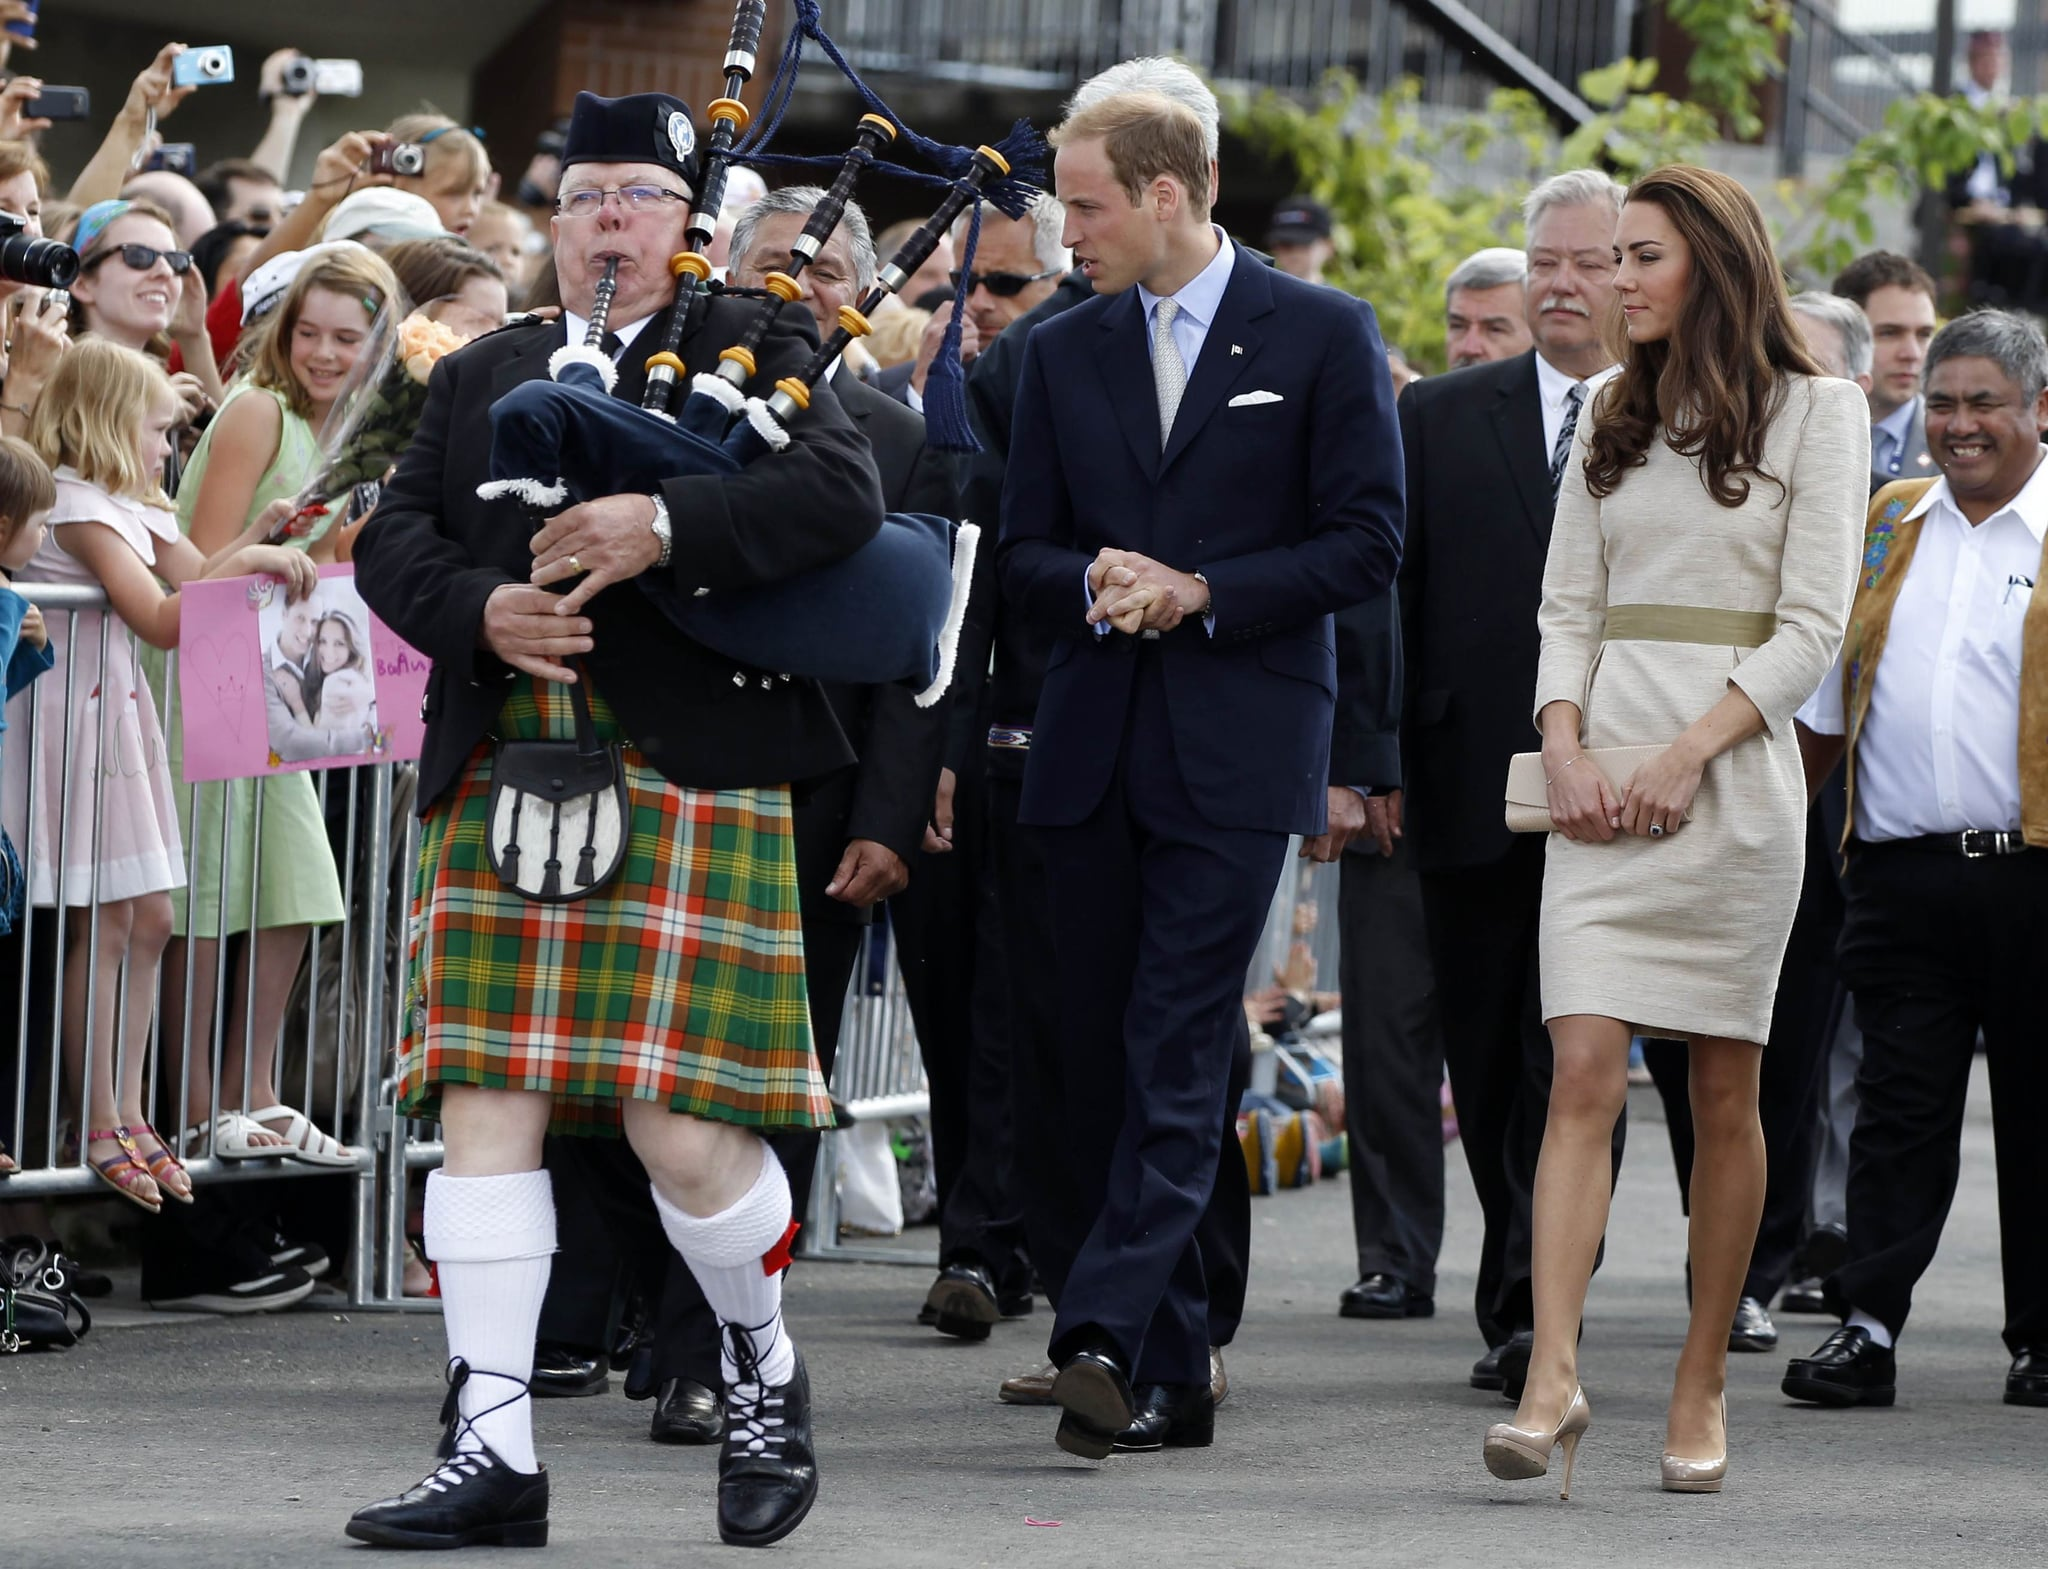 Kate Middleton and Prince William arrived to throngs of fans and admirers.